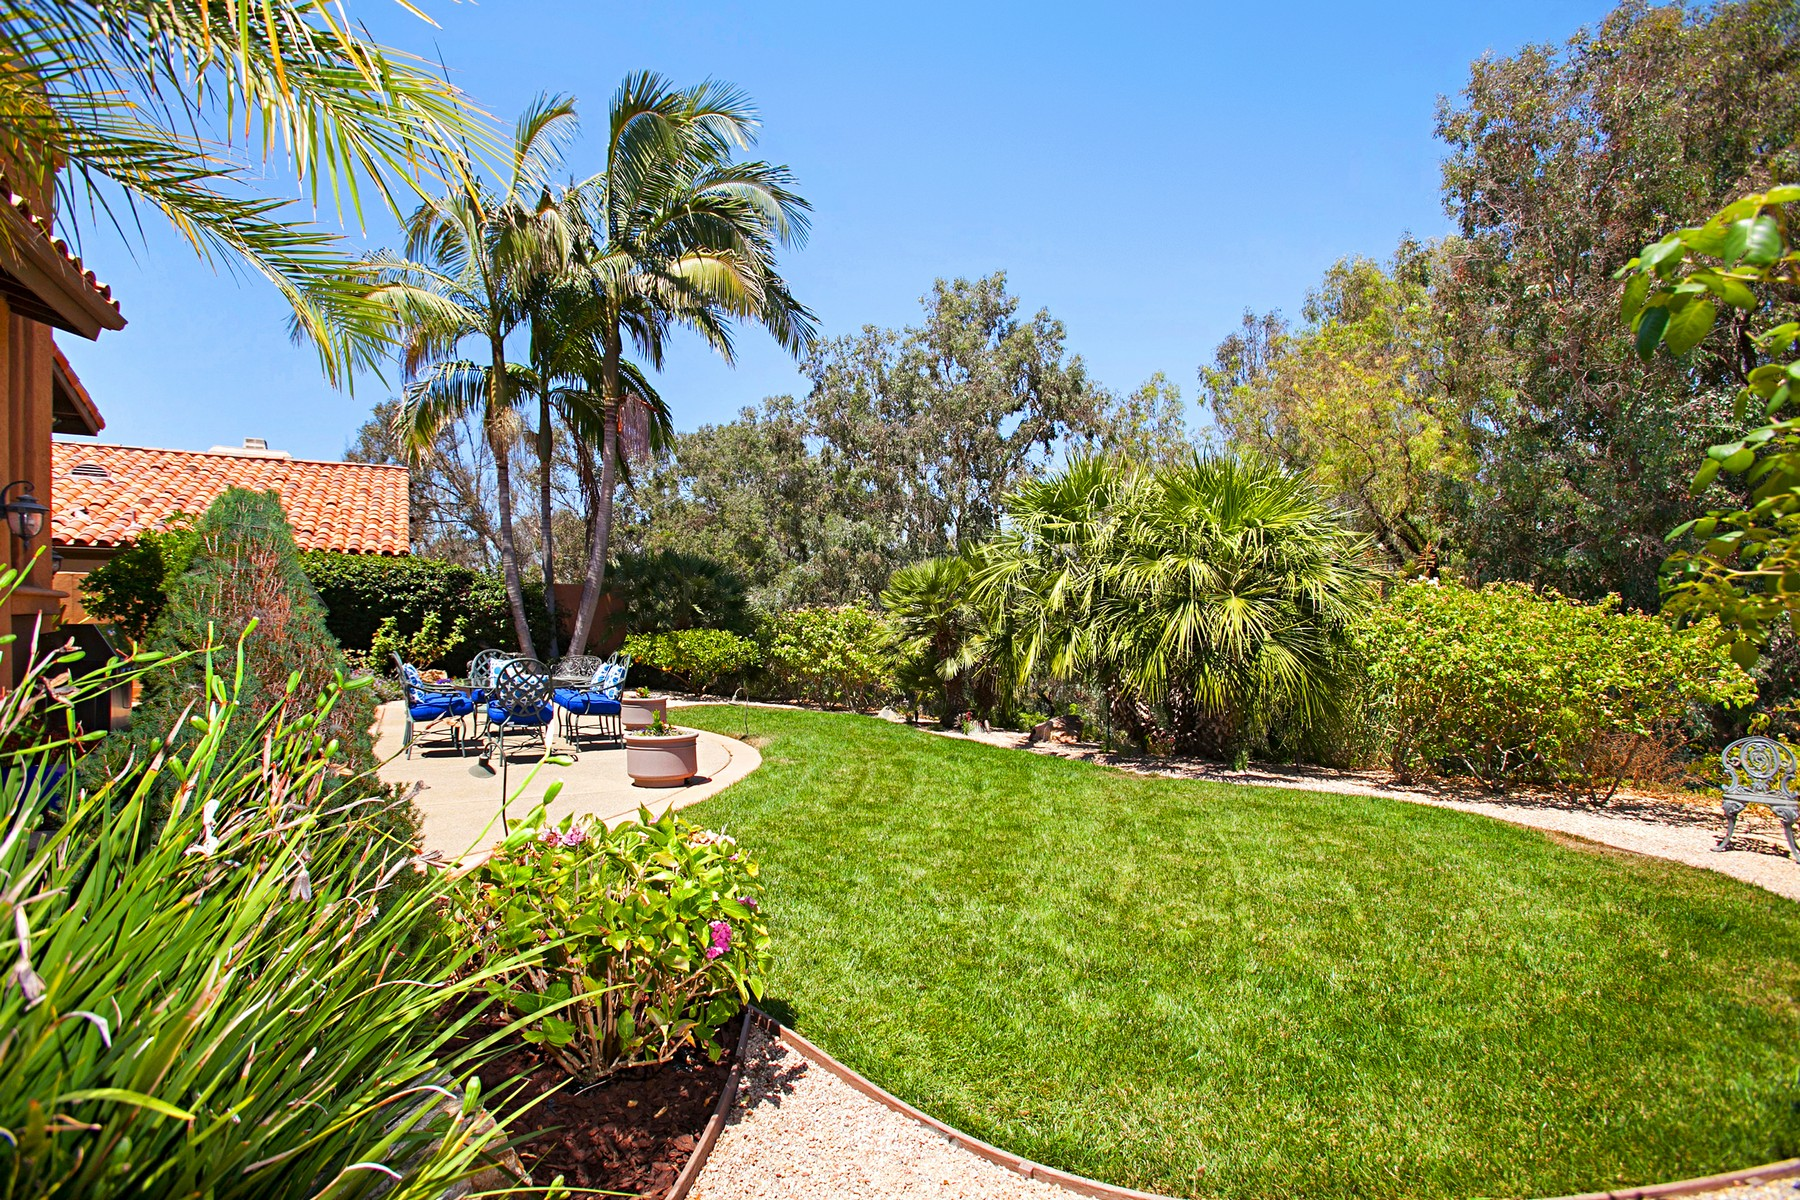 Additional photo for property listing at 15483 Pimlico Corte  Rancho Santa Fe, Калифорния 92067 Соединенные Штаты